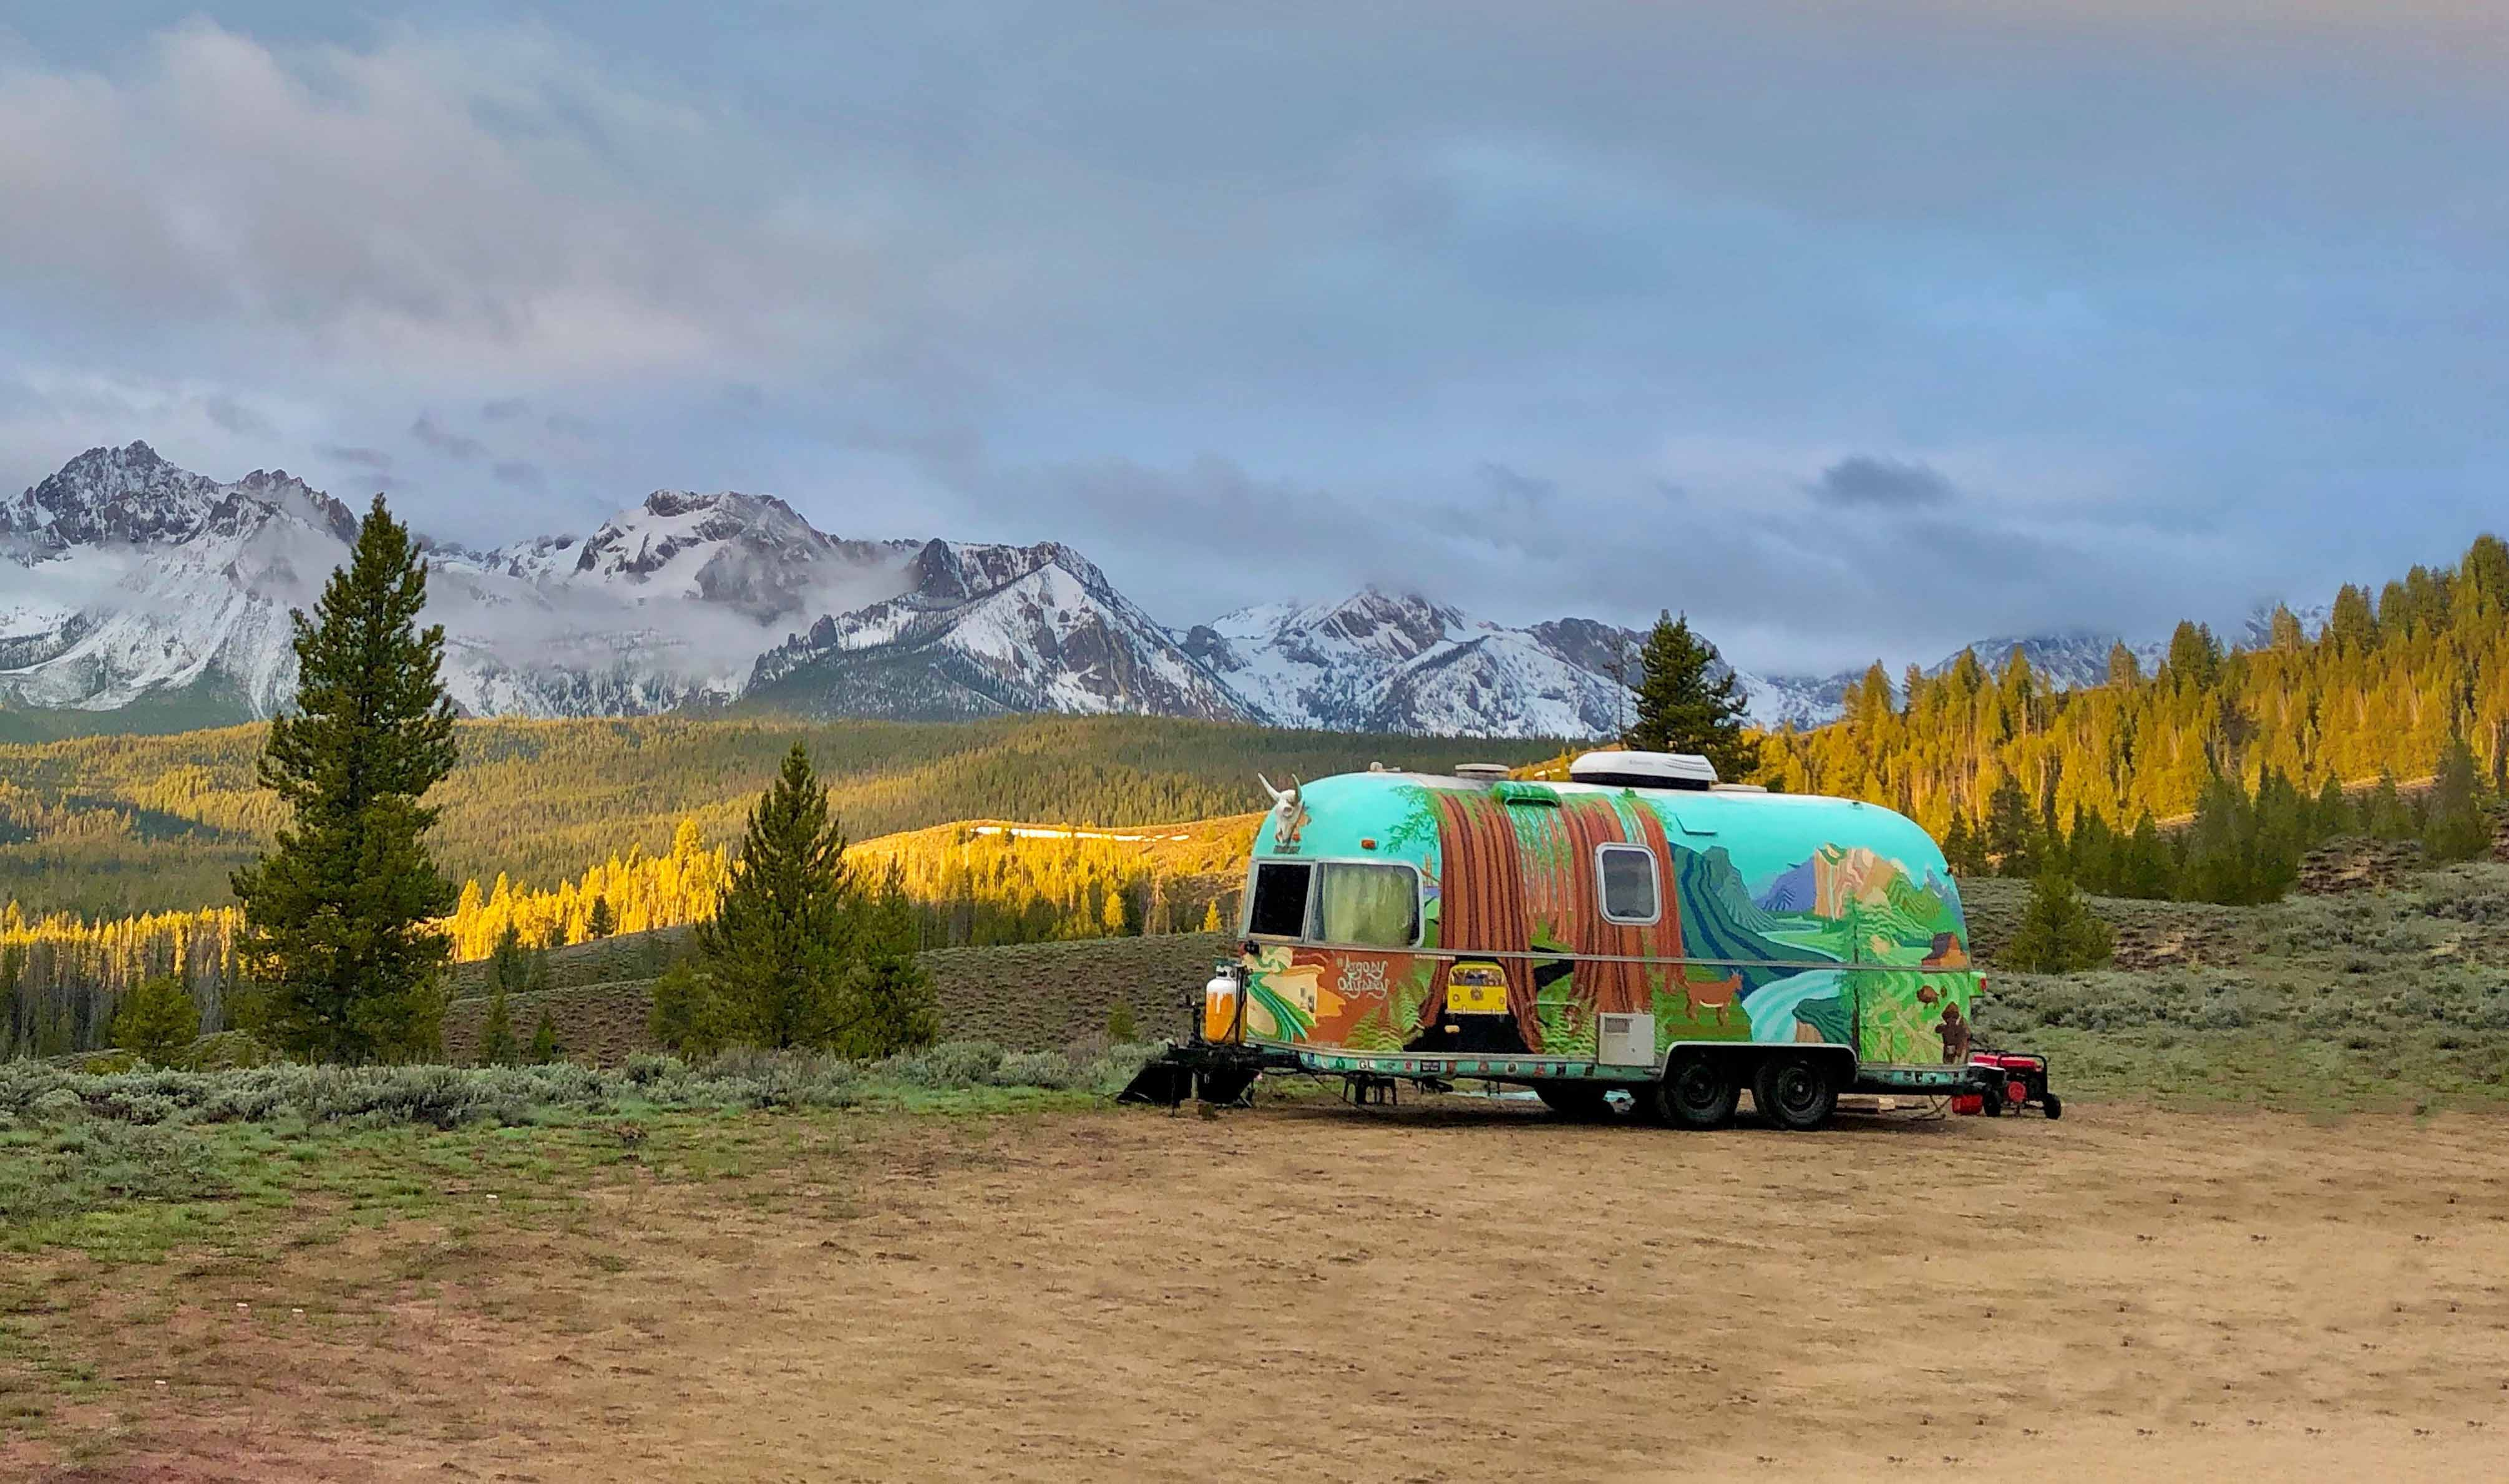 Colorfully painted travel trailer in clearing